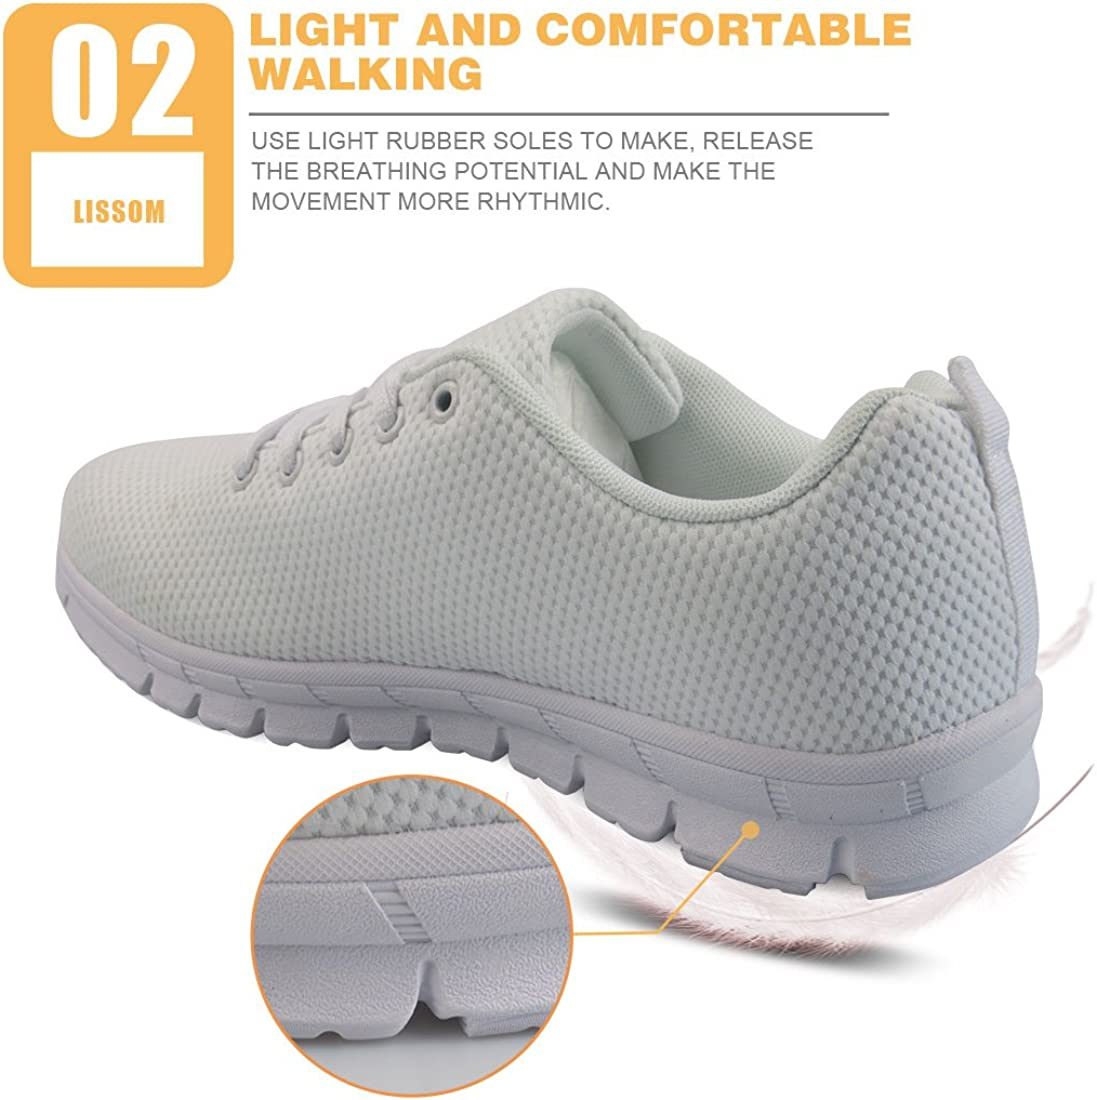 New Funny Flywire Weaving Running Shoe 3D Custom Printed With Train For Unisex Kids